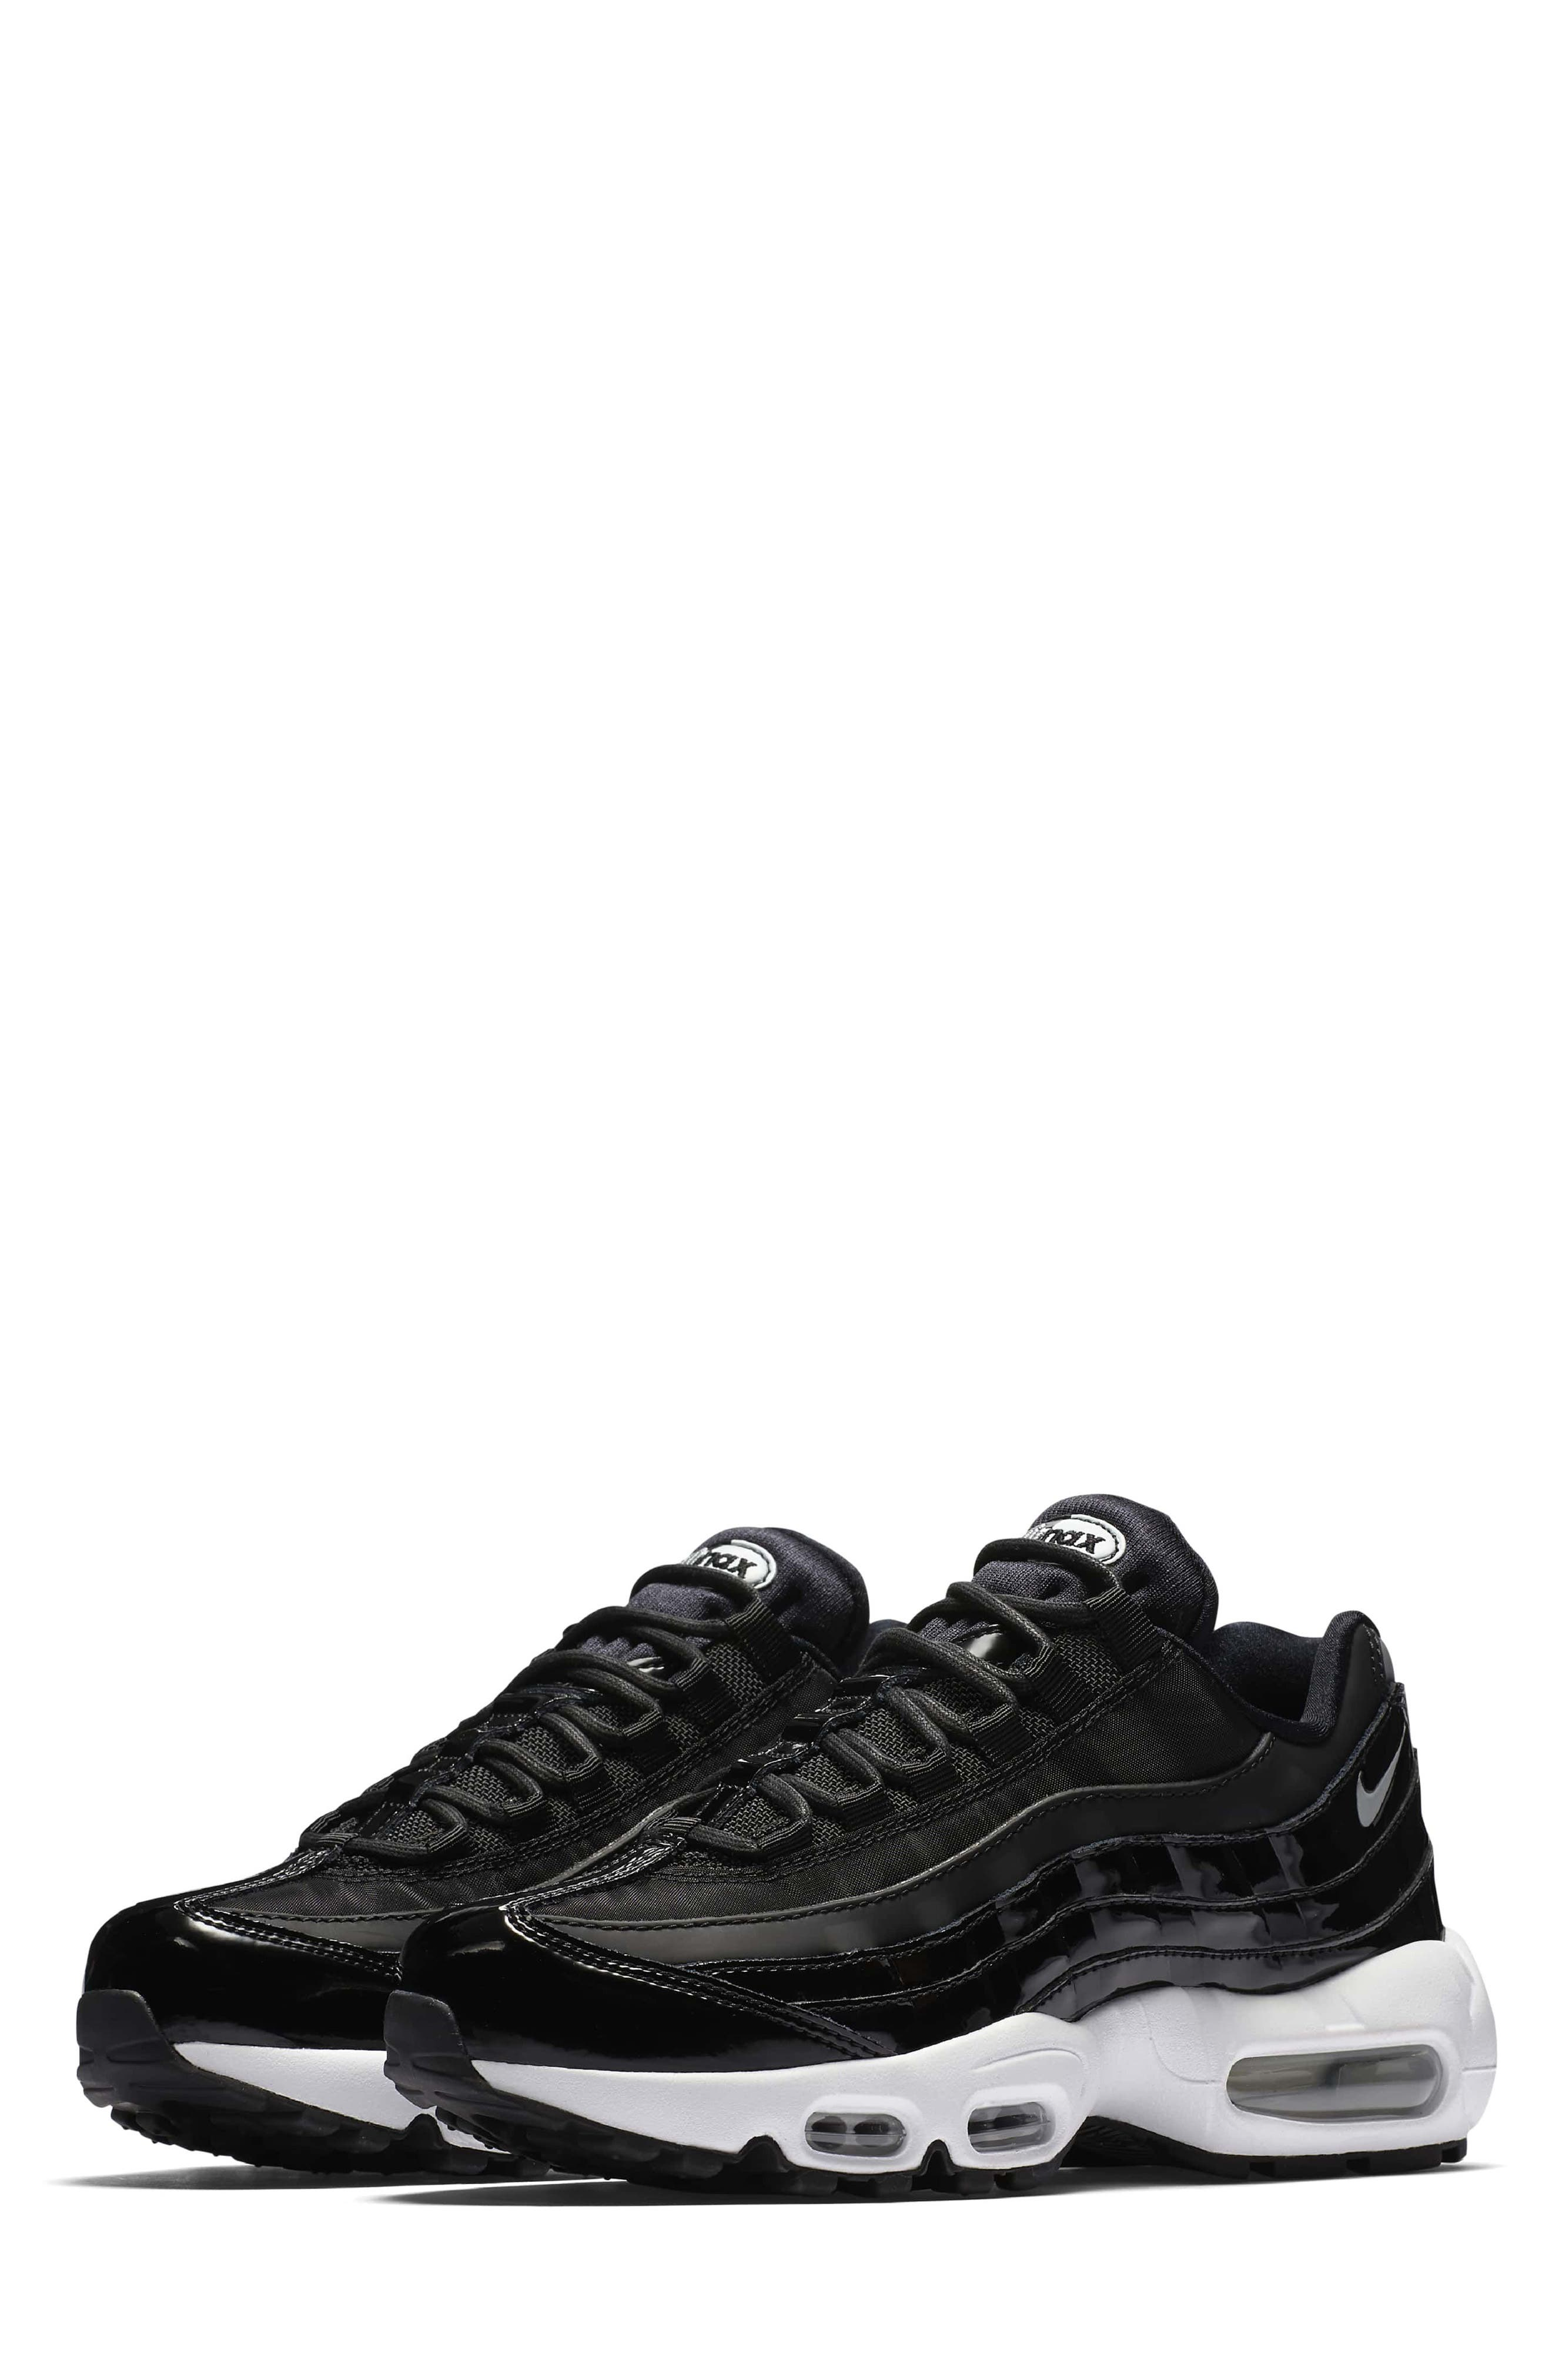 black and white nike air max shoes. nike air max 95 special edition running shoe (women) black and white shoes